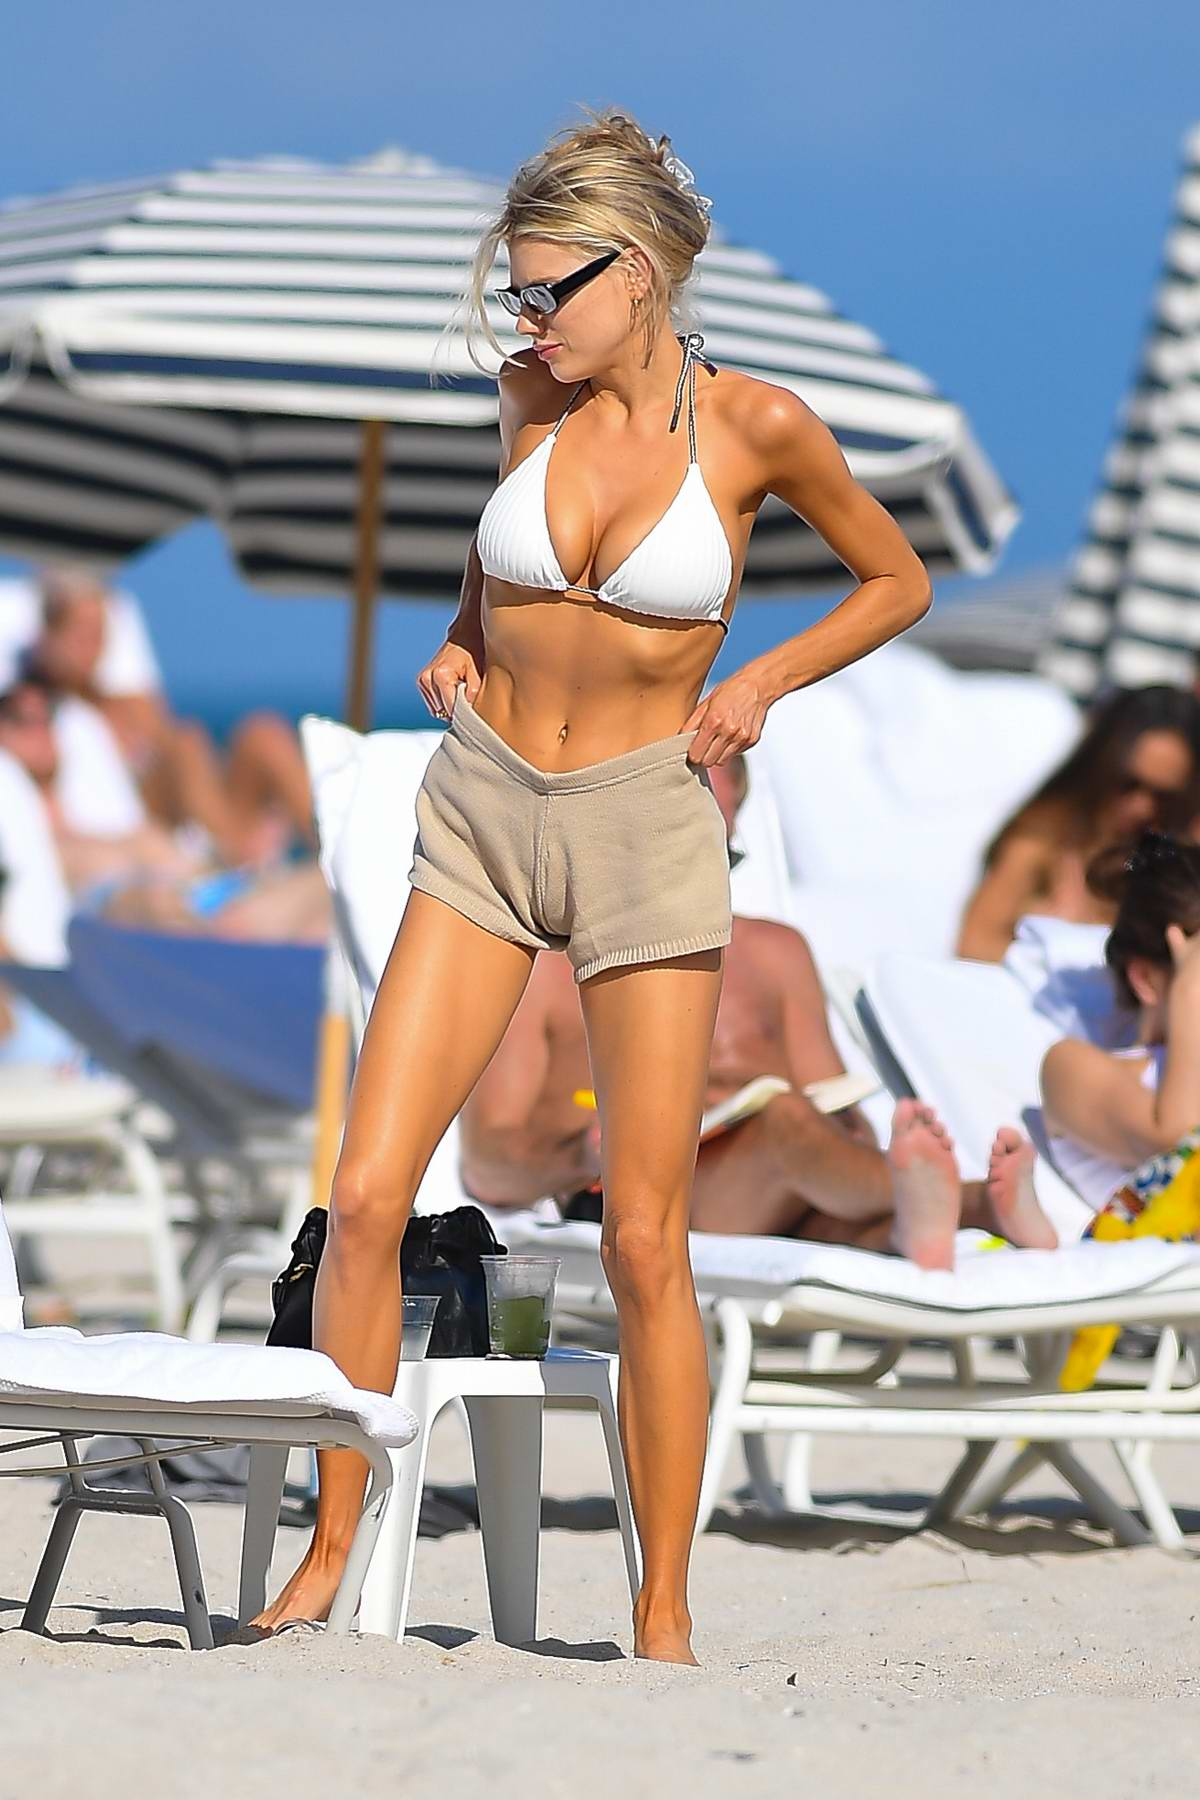 Charlotte McKinney shows off her beach body in a white bikini top and shorts while enjoying a beach day in Miami, Florida